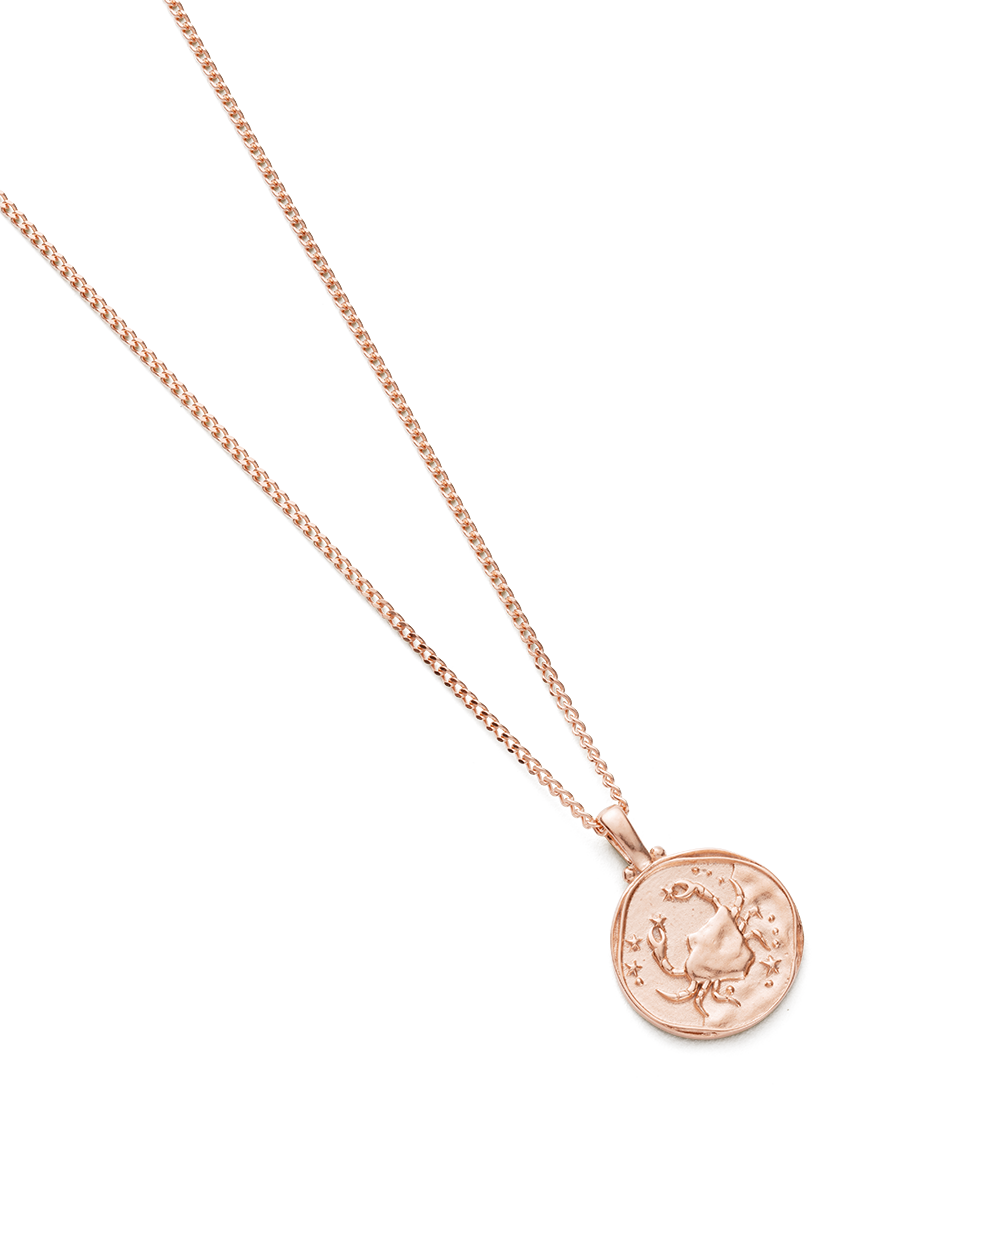 CANCER ZODIAC NECKLACE (18K-ROSE GOLD-VERMEIL)